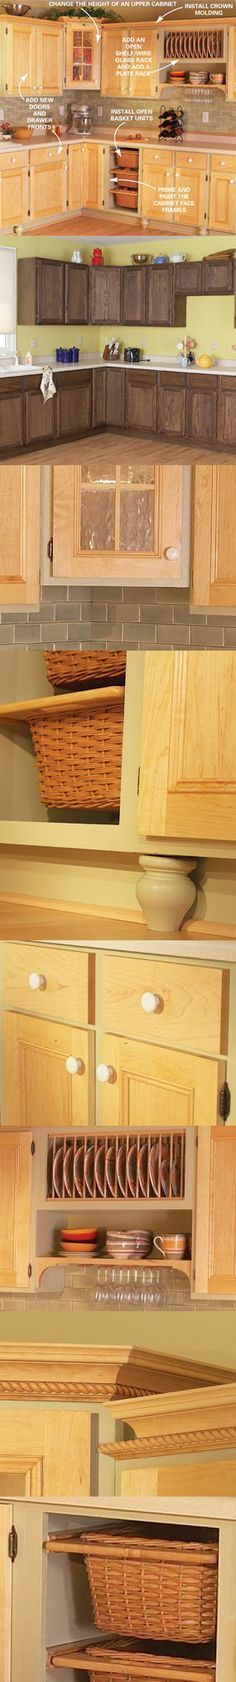 Remodel your kitchen at a bargain cost with these cabinet upgrades, including new doors and drawer fronts, open shelving, improved storage and painted frames. Find six project ideas to make over your kitchen cabinets at http://www.familyhandyman.com/DIY-Projects/Indoor-Projects/Kitchens/Kitchen-Remodeling/cabinet-facelift/View-All